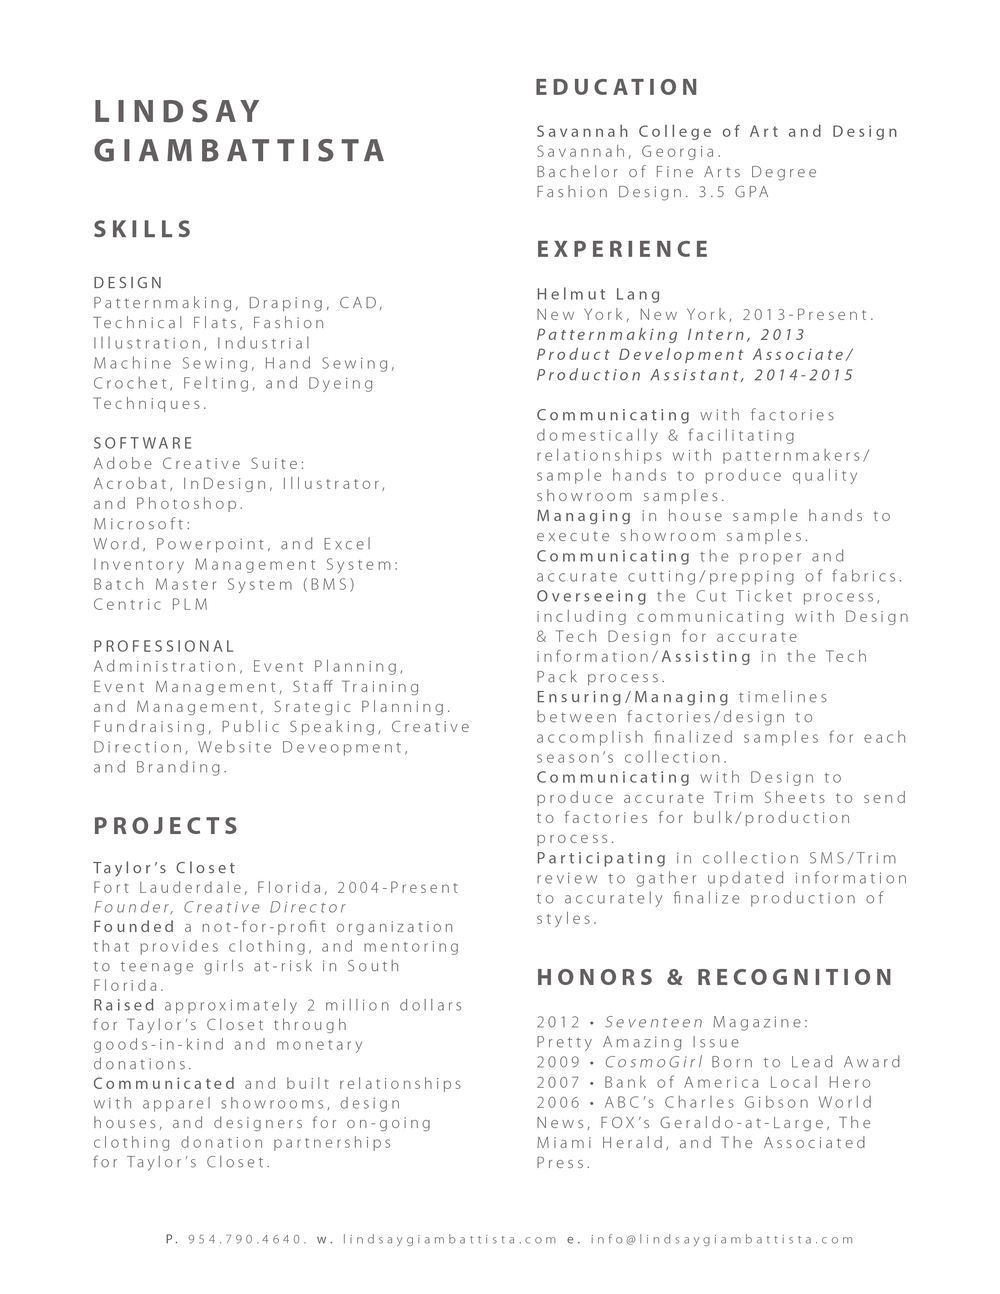 resume lindsay giambattista reacutesumeacute jpg